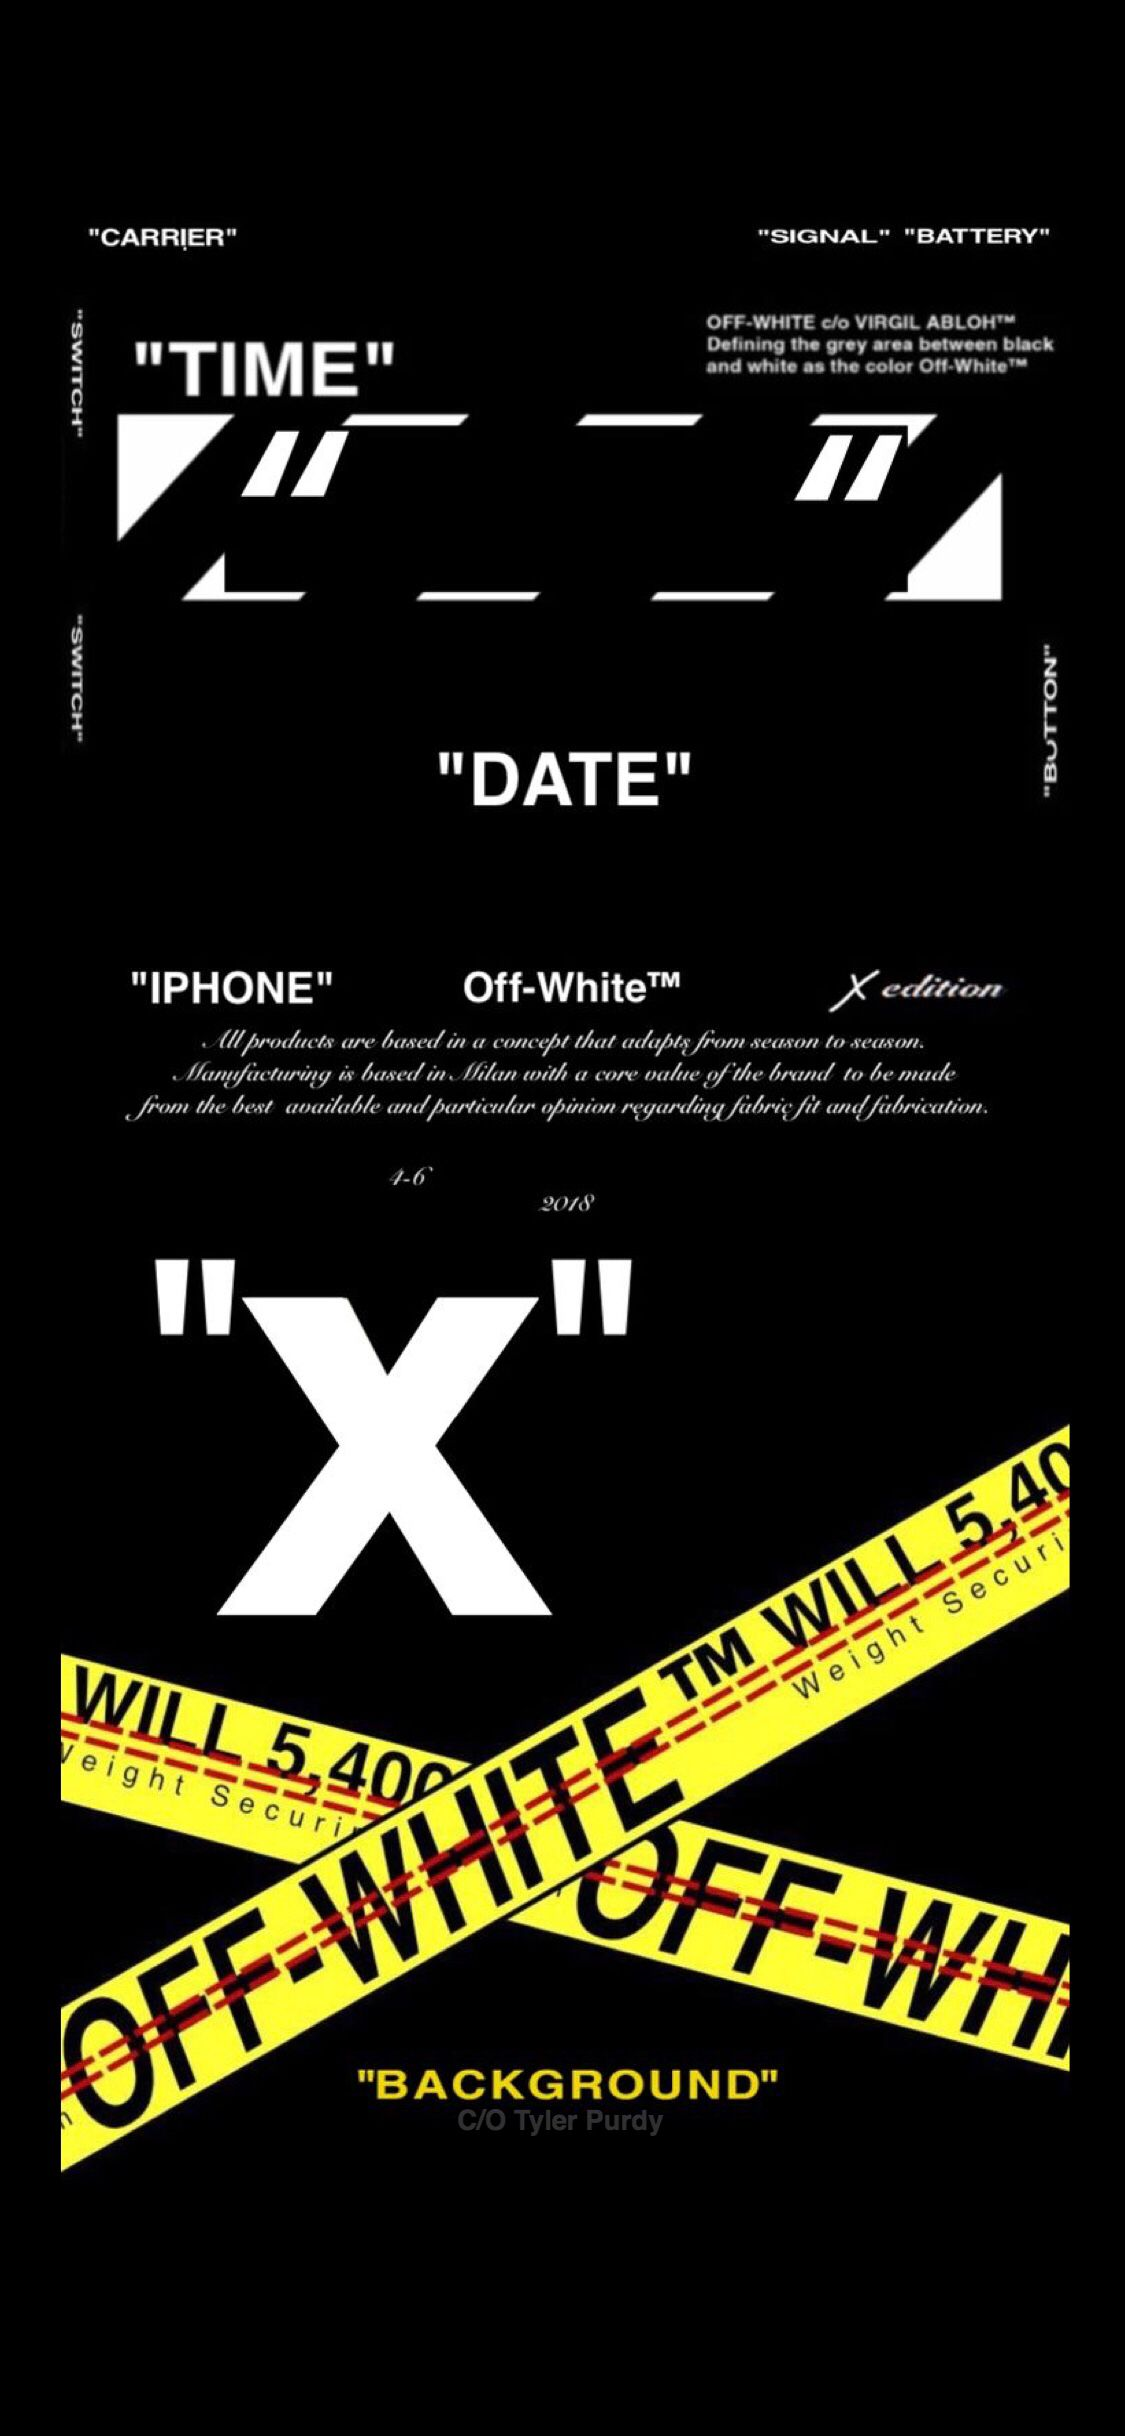 iPhone X version offwhite wallpaper, created by T¥L£R